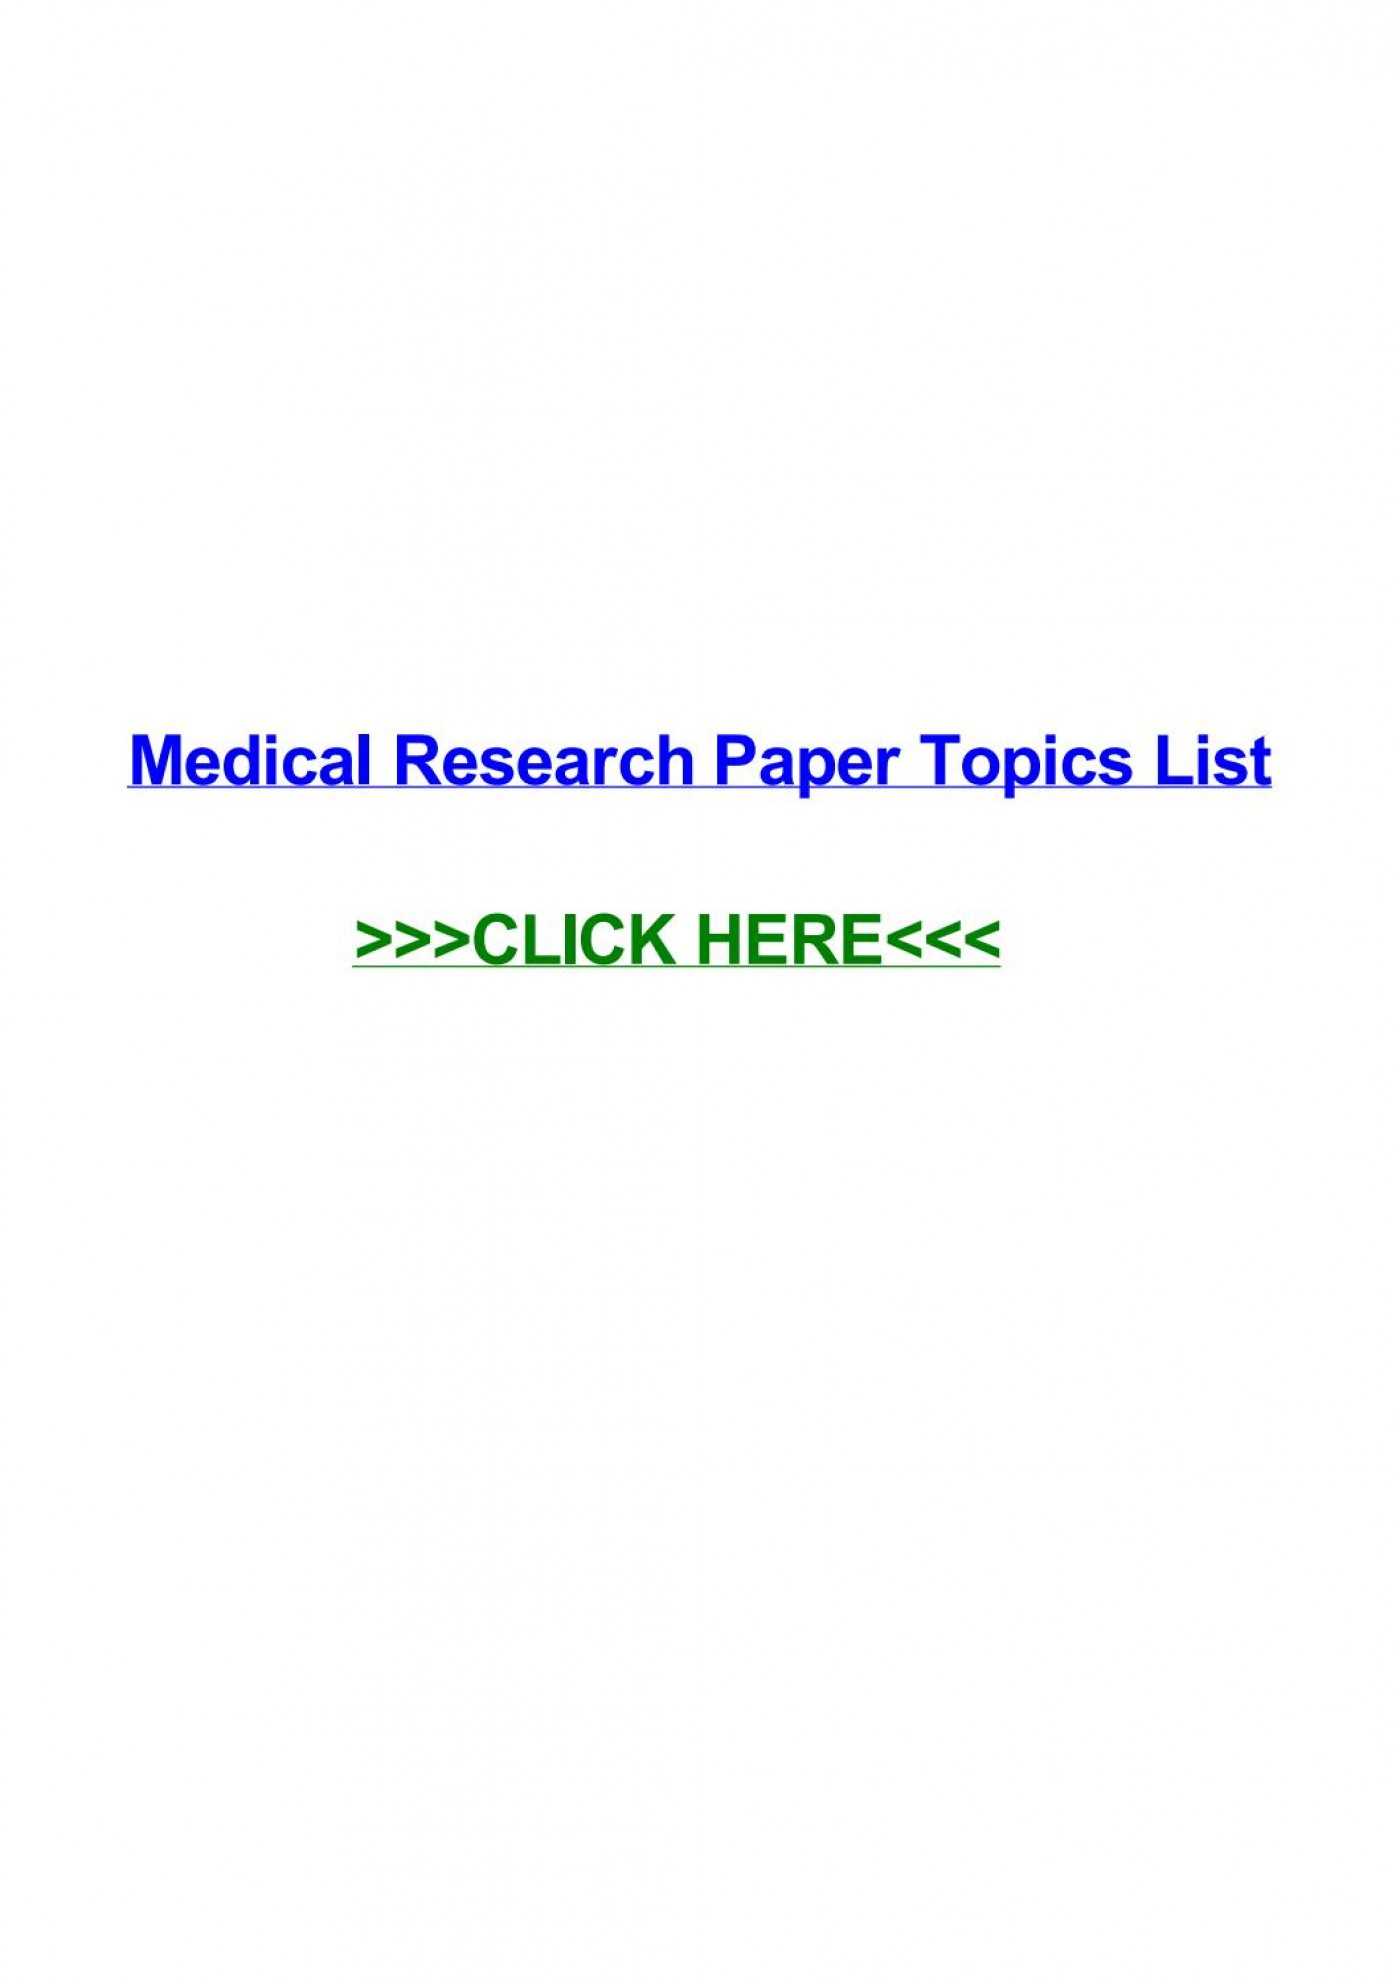 015 Research Paper Medical Topics Page 1 Stupendous For High School Students College 1400